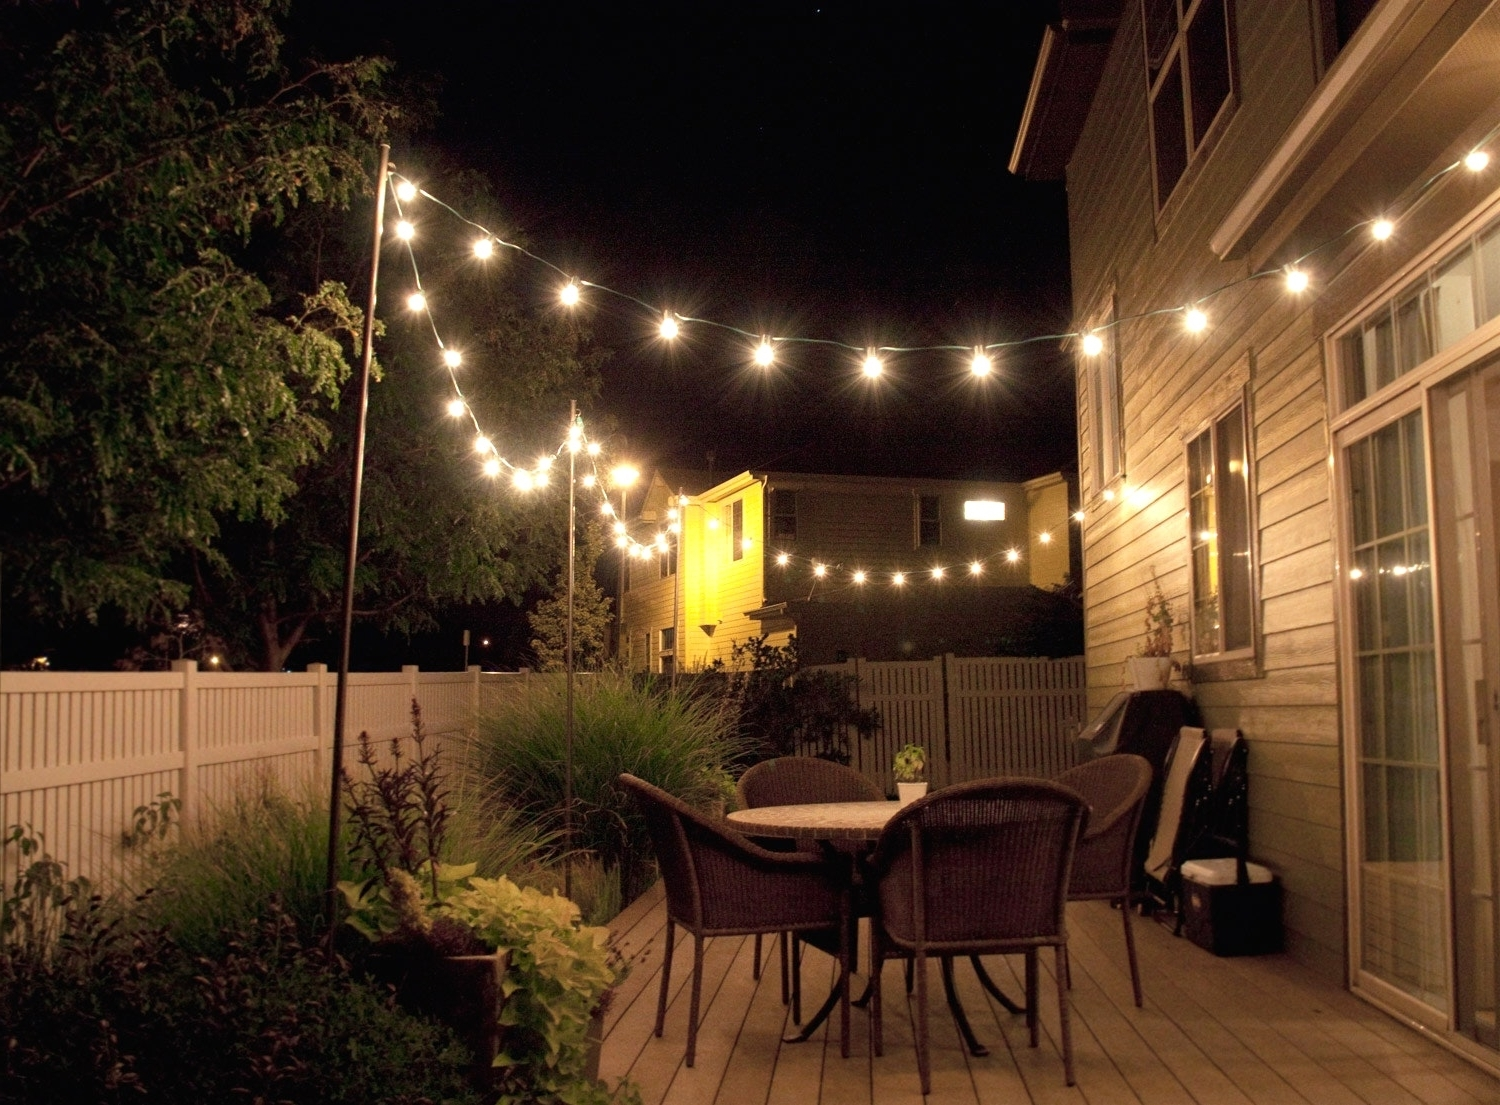 Popular Outdoor Hanging Light Bulbs And Bulb With Bright July Diy String Pertaining To Outdoor Hanging String Light Bulbs (View 15 of 20)